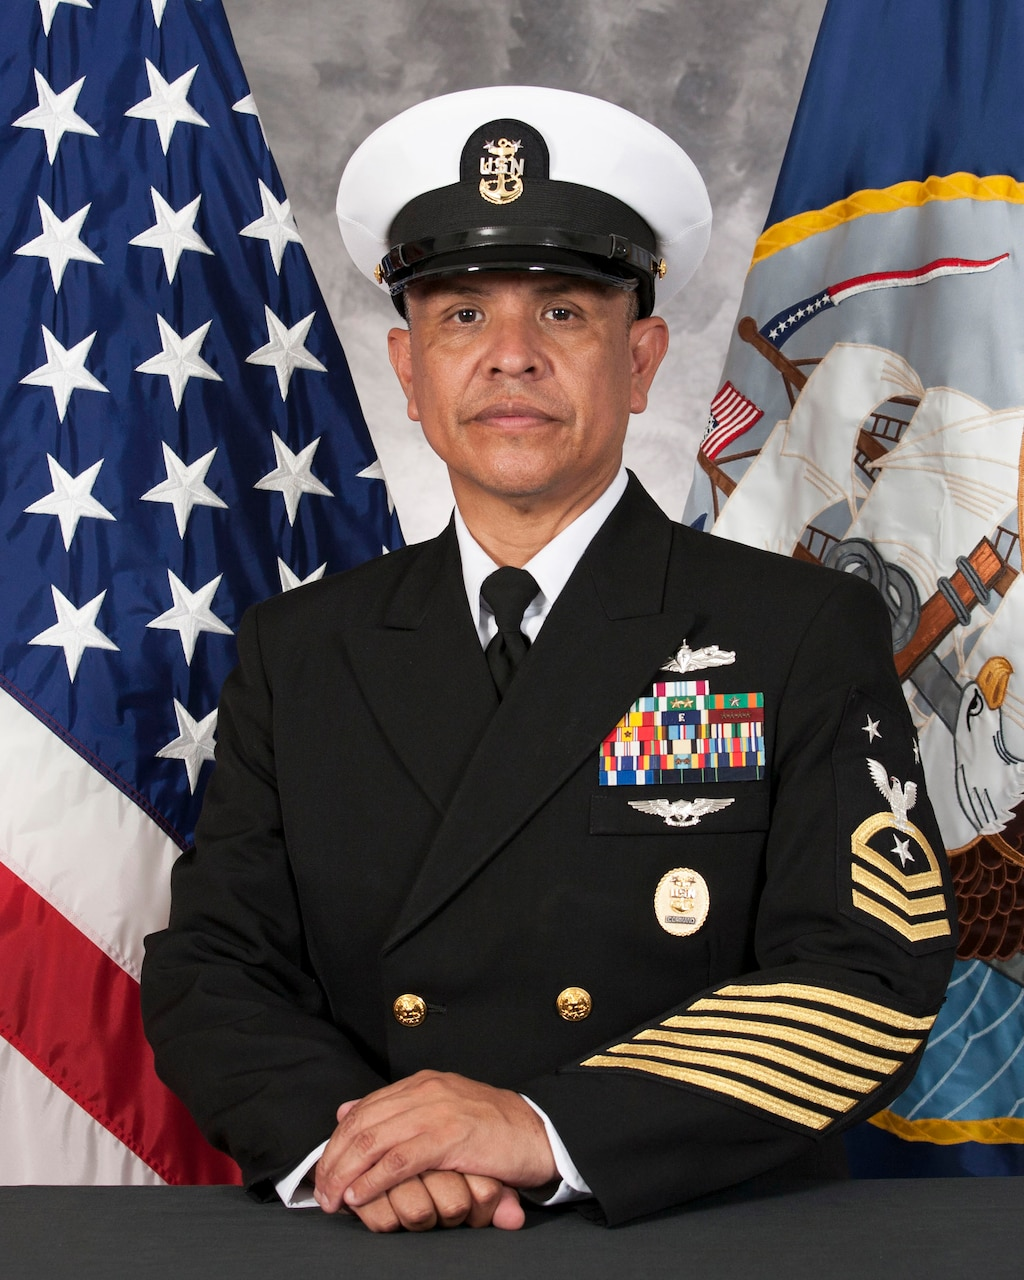 Official biography photo of Command Master Chief Francisco Diego, command master chief, USS John S. McCain (DDG 56).